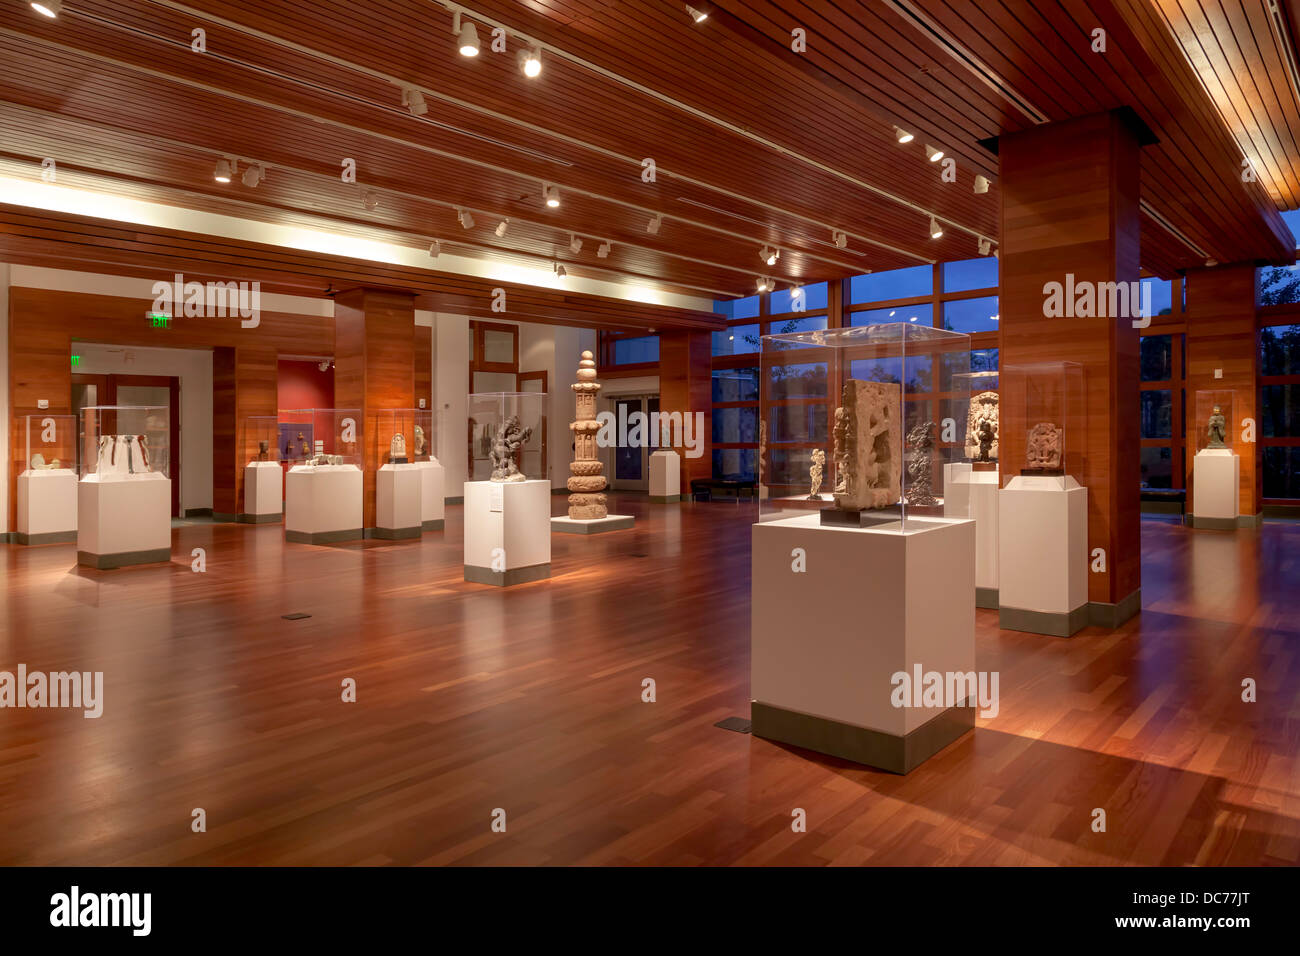 Artifacts, sculptures and antiquities on display displayed in Cofrin Asian Art Exhibit in the Harn Museum. - Stock Image